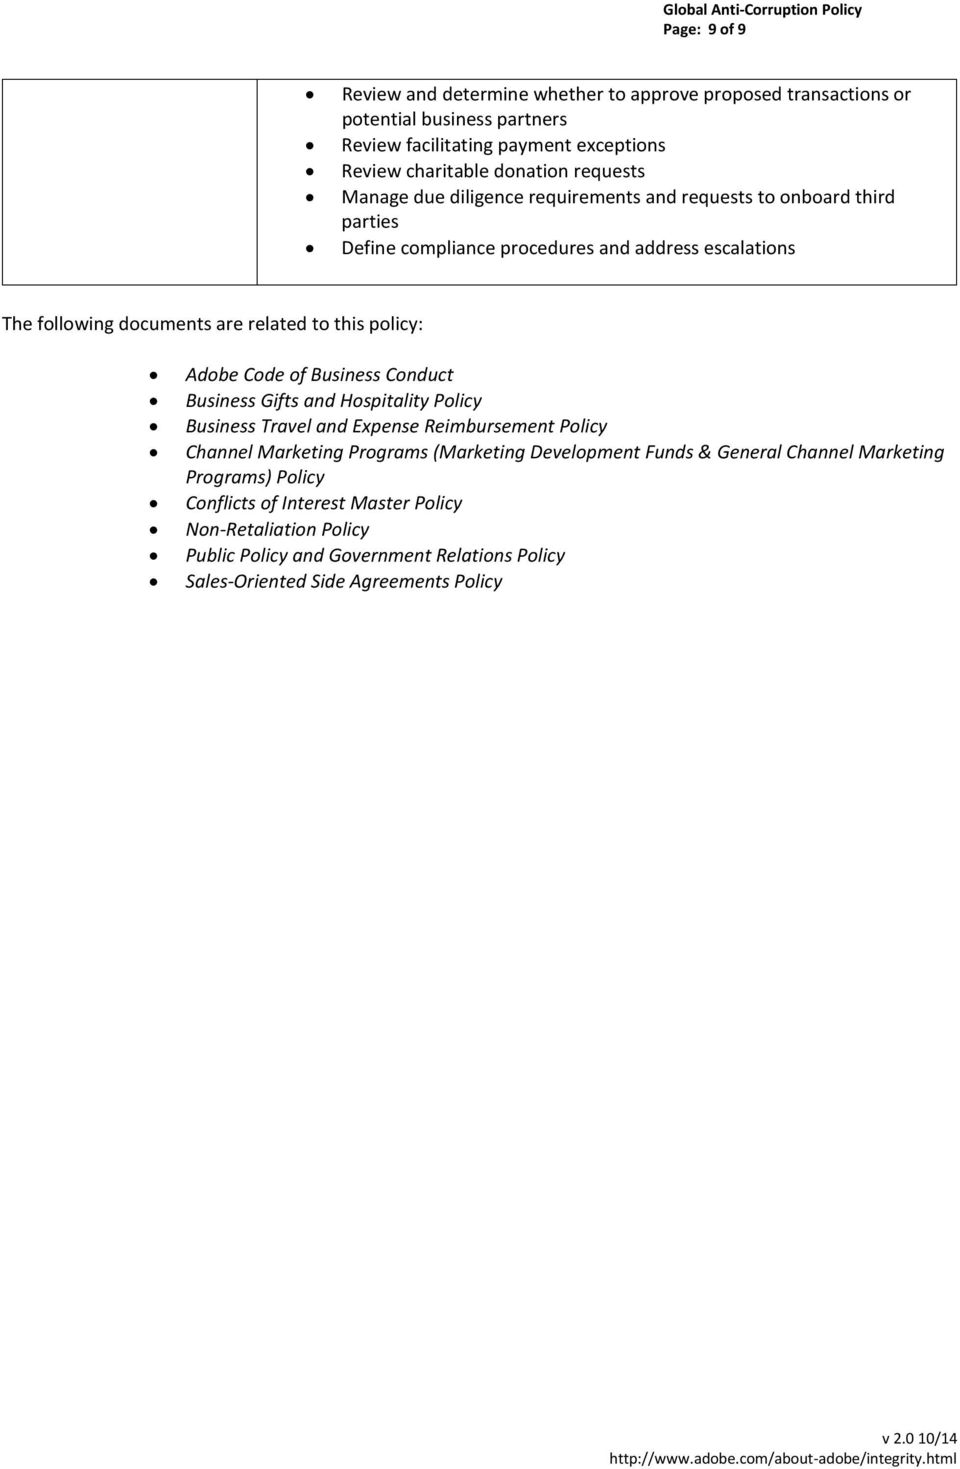 RESPONSIBILITY AND RELATED DOCUMENTS - PDF